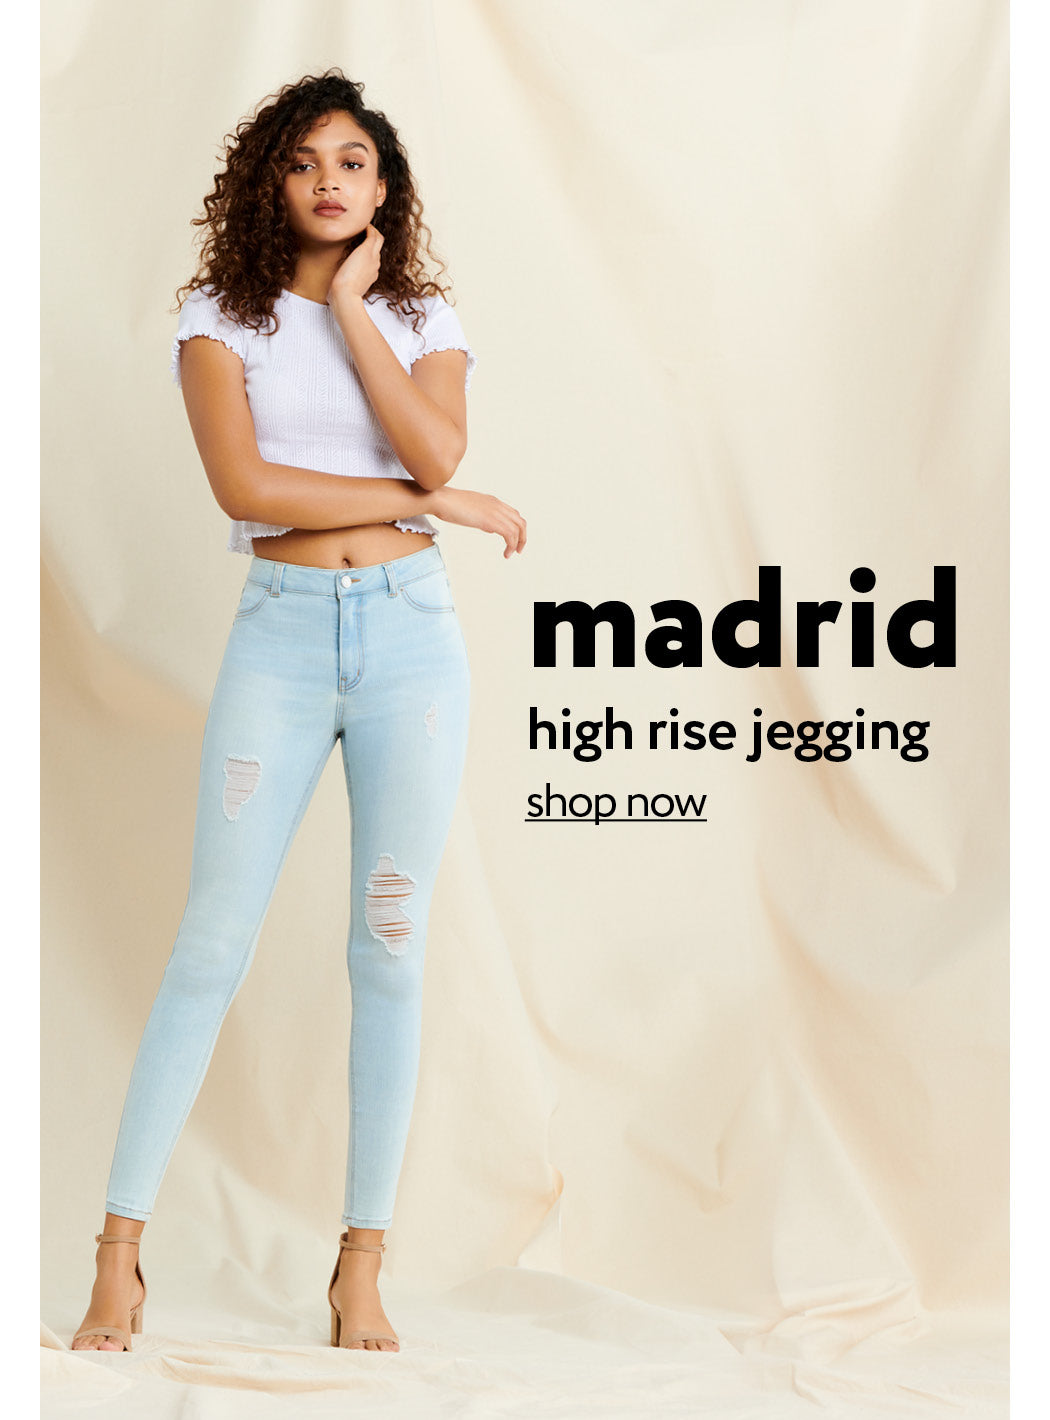 Urban Planet | Madrid - High rise jegging - Shop Now